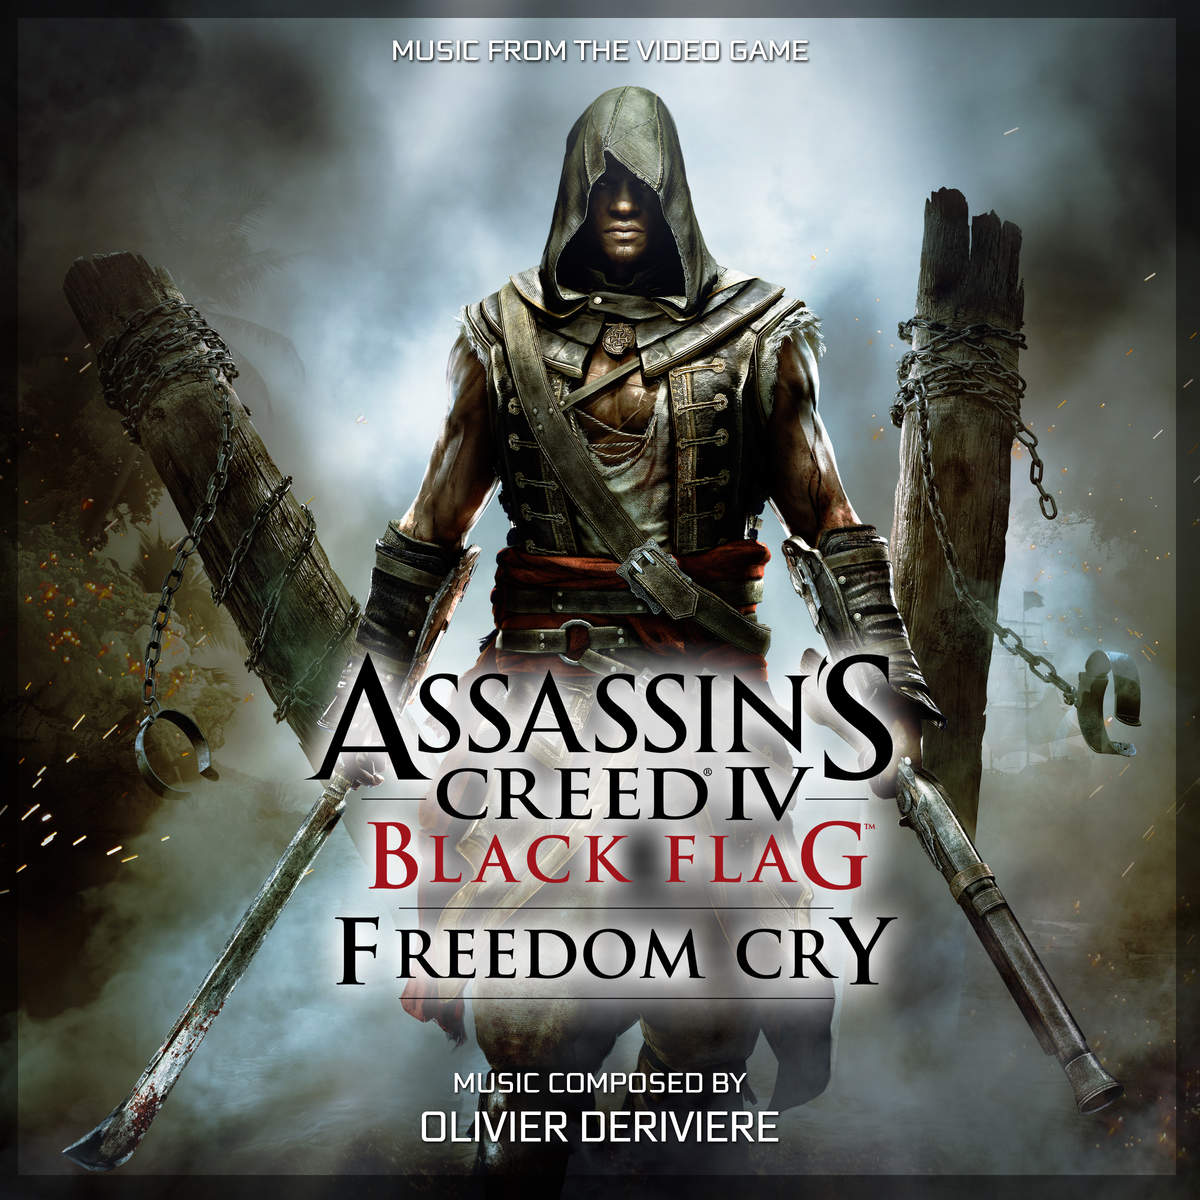 Assassins_Creed_4_Black_Flag_Freedom_Cry_Music_from_the_Video_Game__cover1200x1200.jpeg